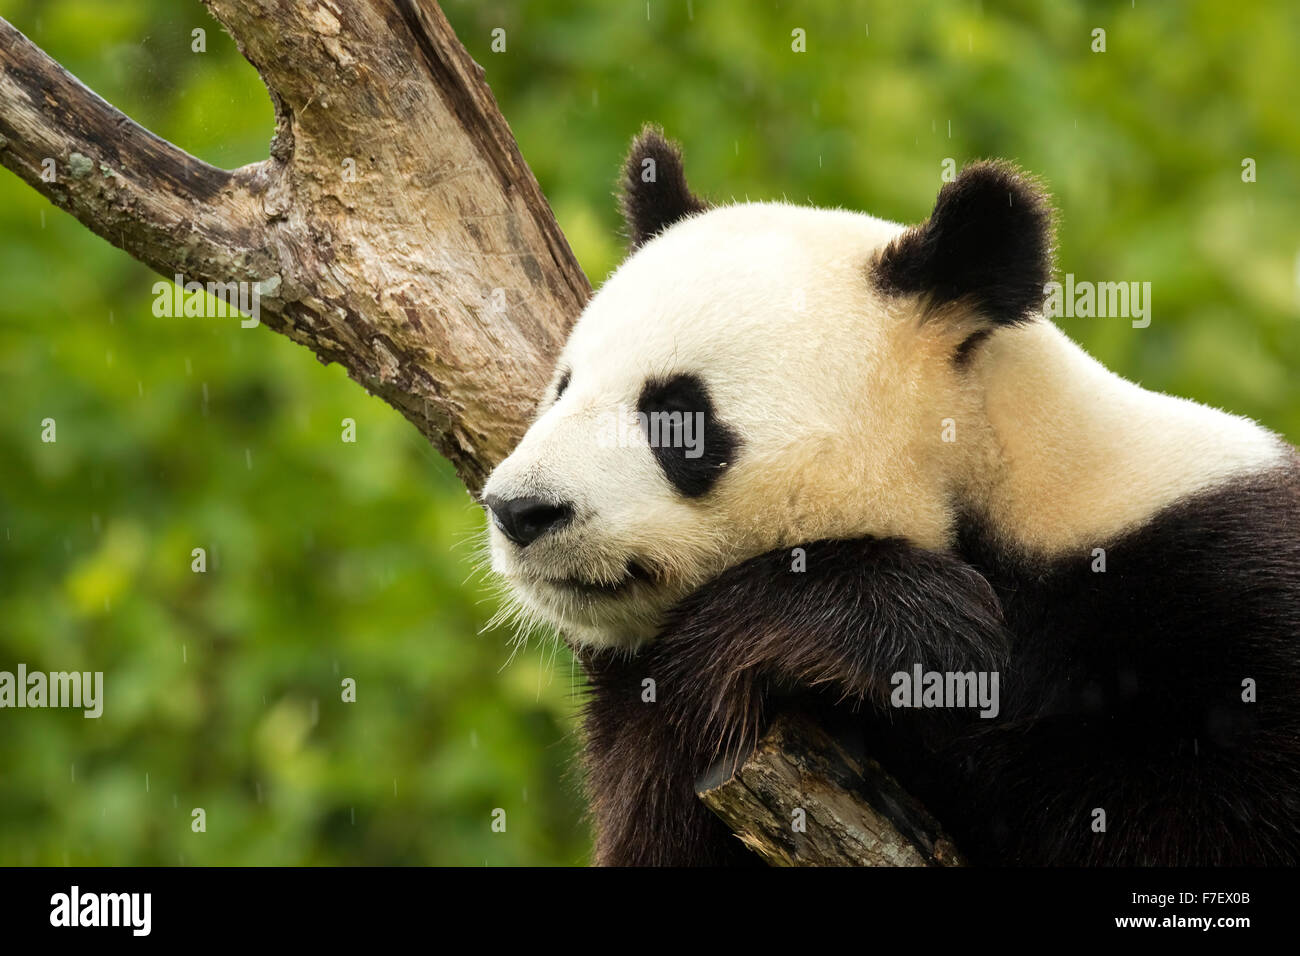 panda sleep stockfotos panda sleep bilder alamy. Black Bedroom Furniture Sets. Home Design Ideas